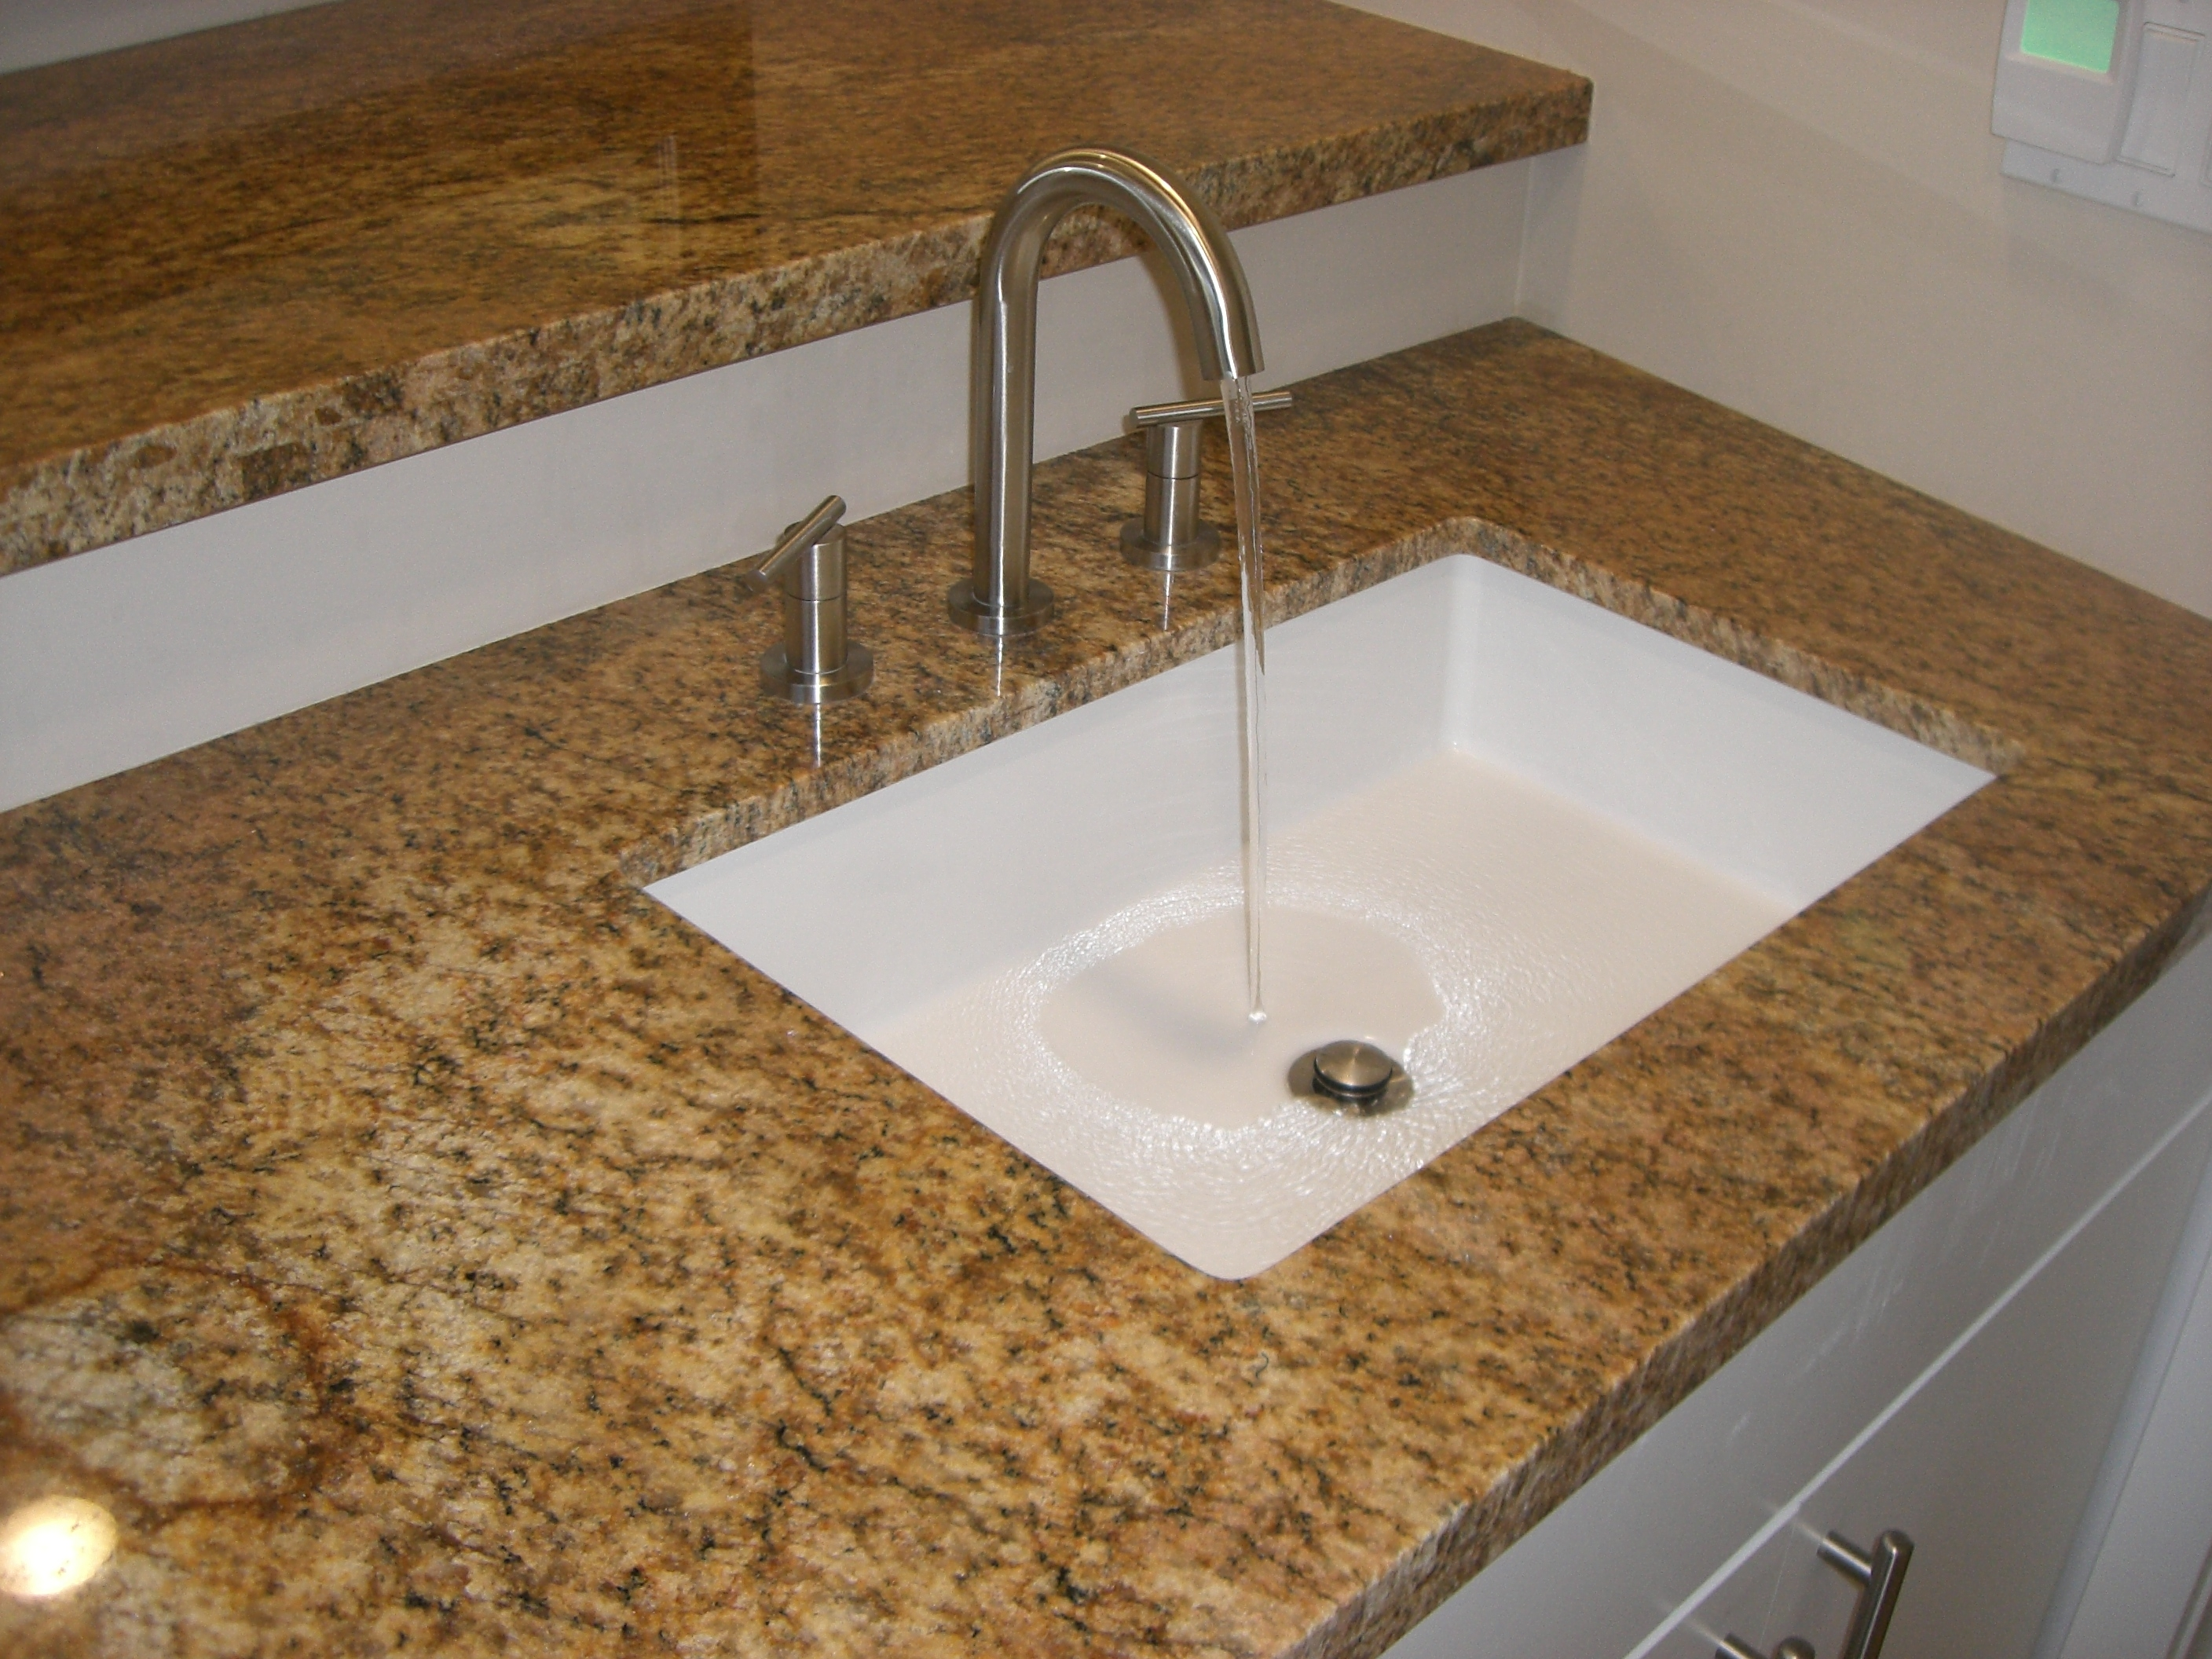 Ideas, are mirabelle faucets good are mirabelle faucets good are mirabelle sinks good best sink decoration 2816 x 2112  .